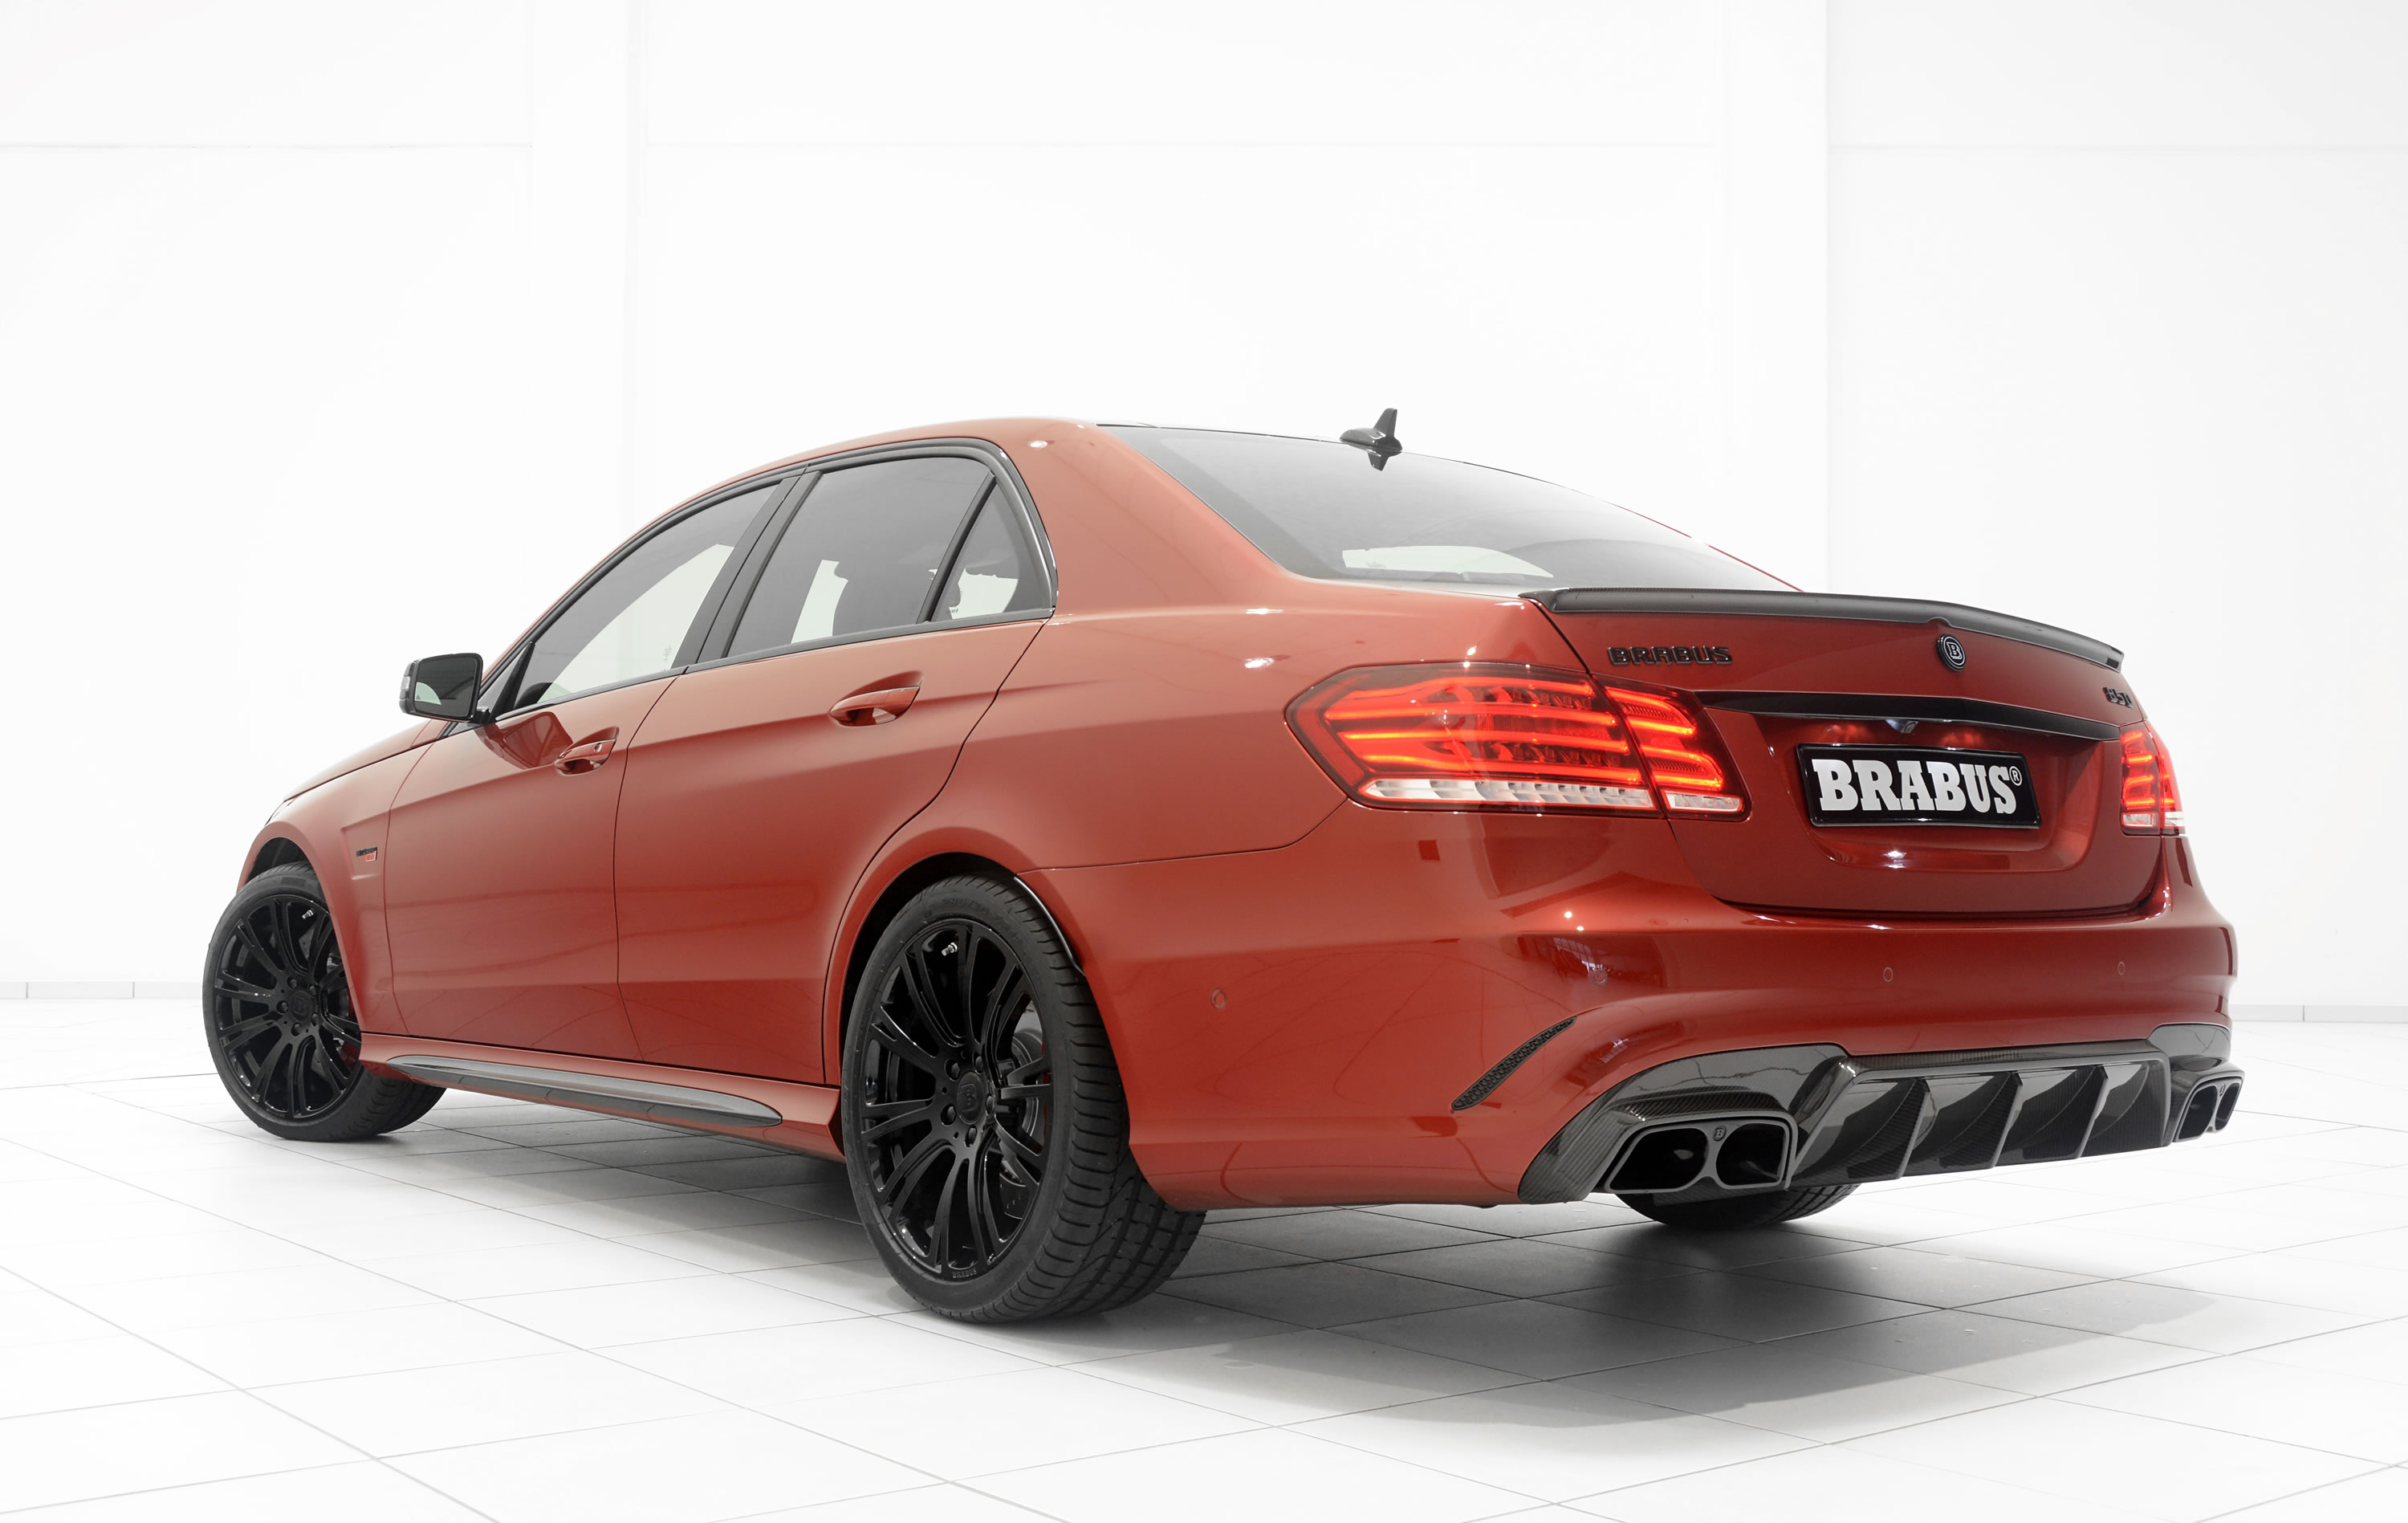 2015 mercedes benz e63 amg 850 biturbo by brabus photos for Mercedes benz e63 amg price